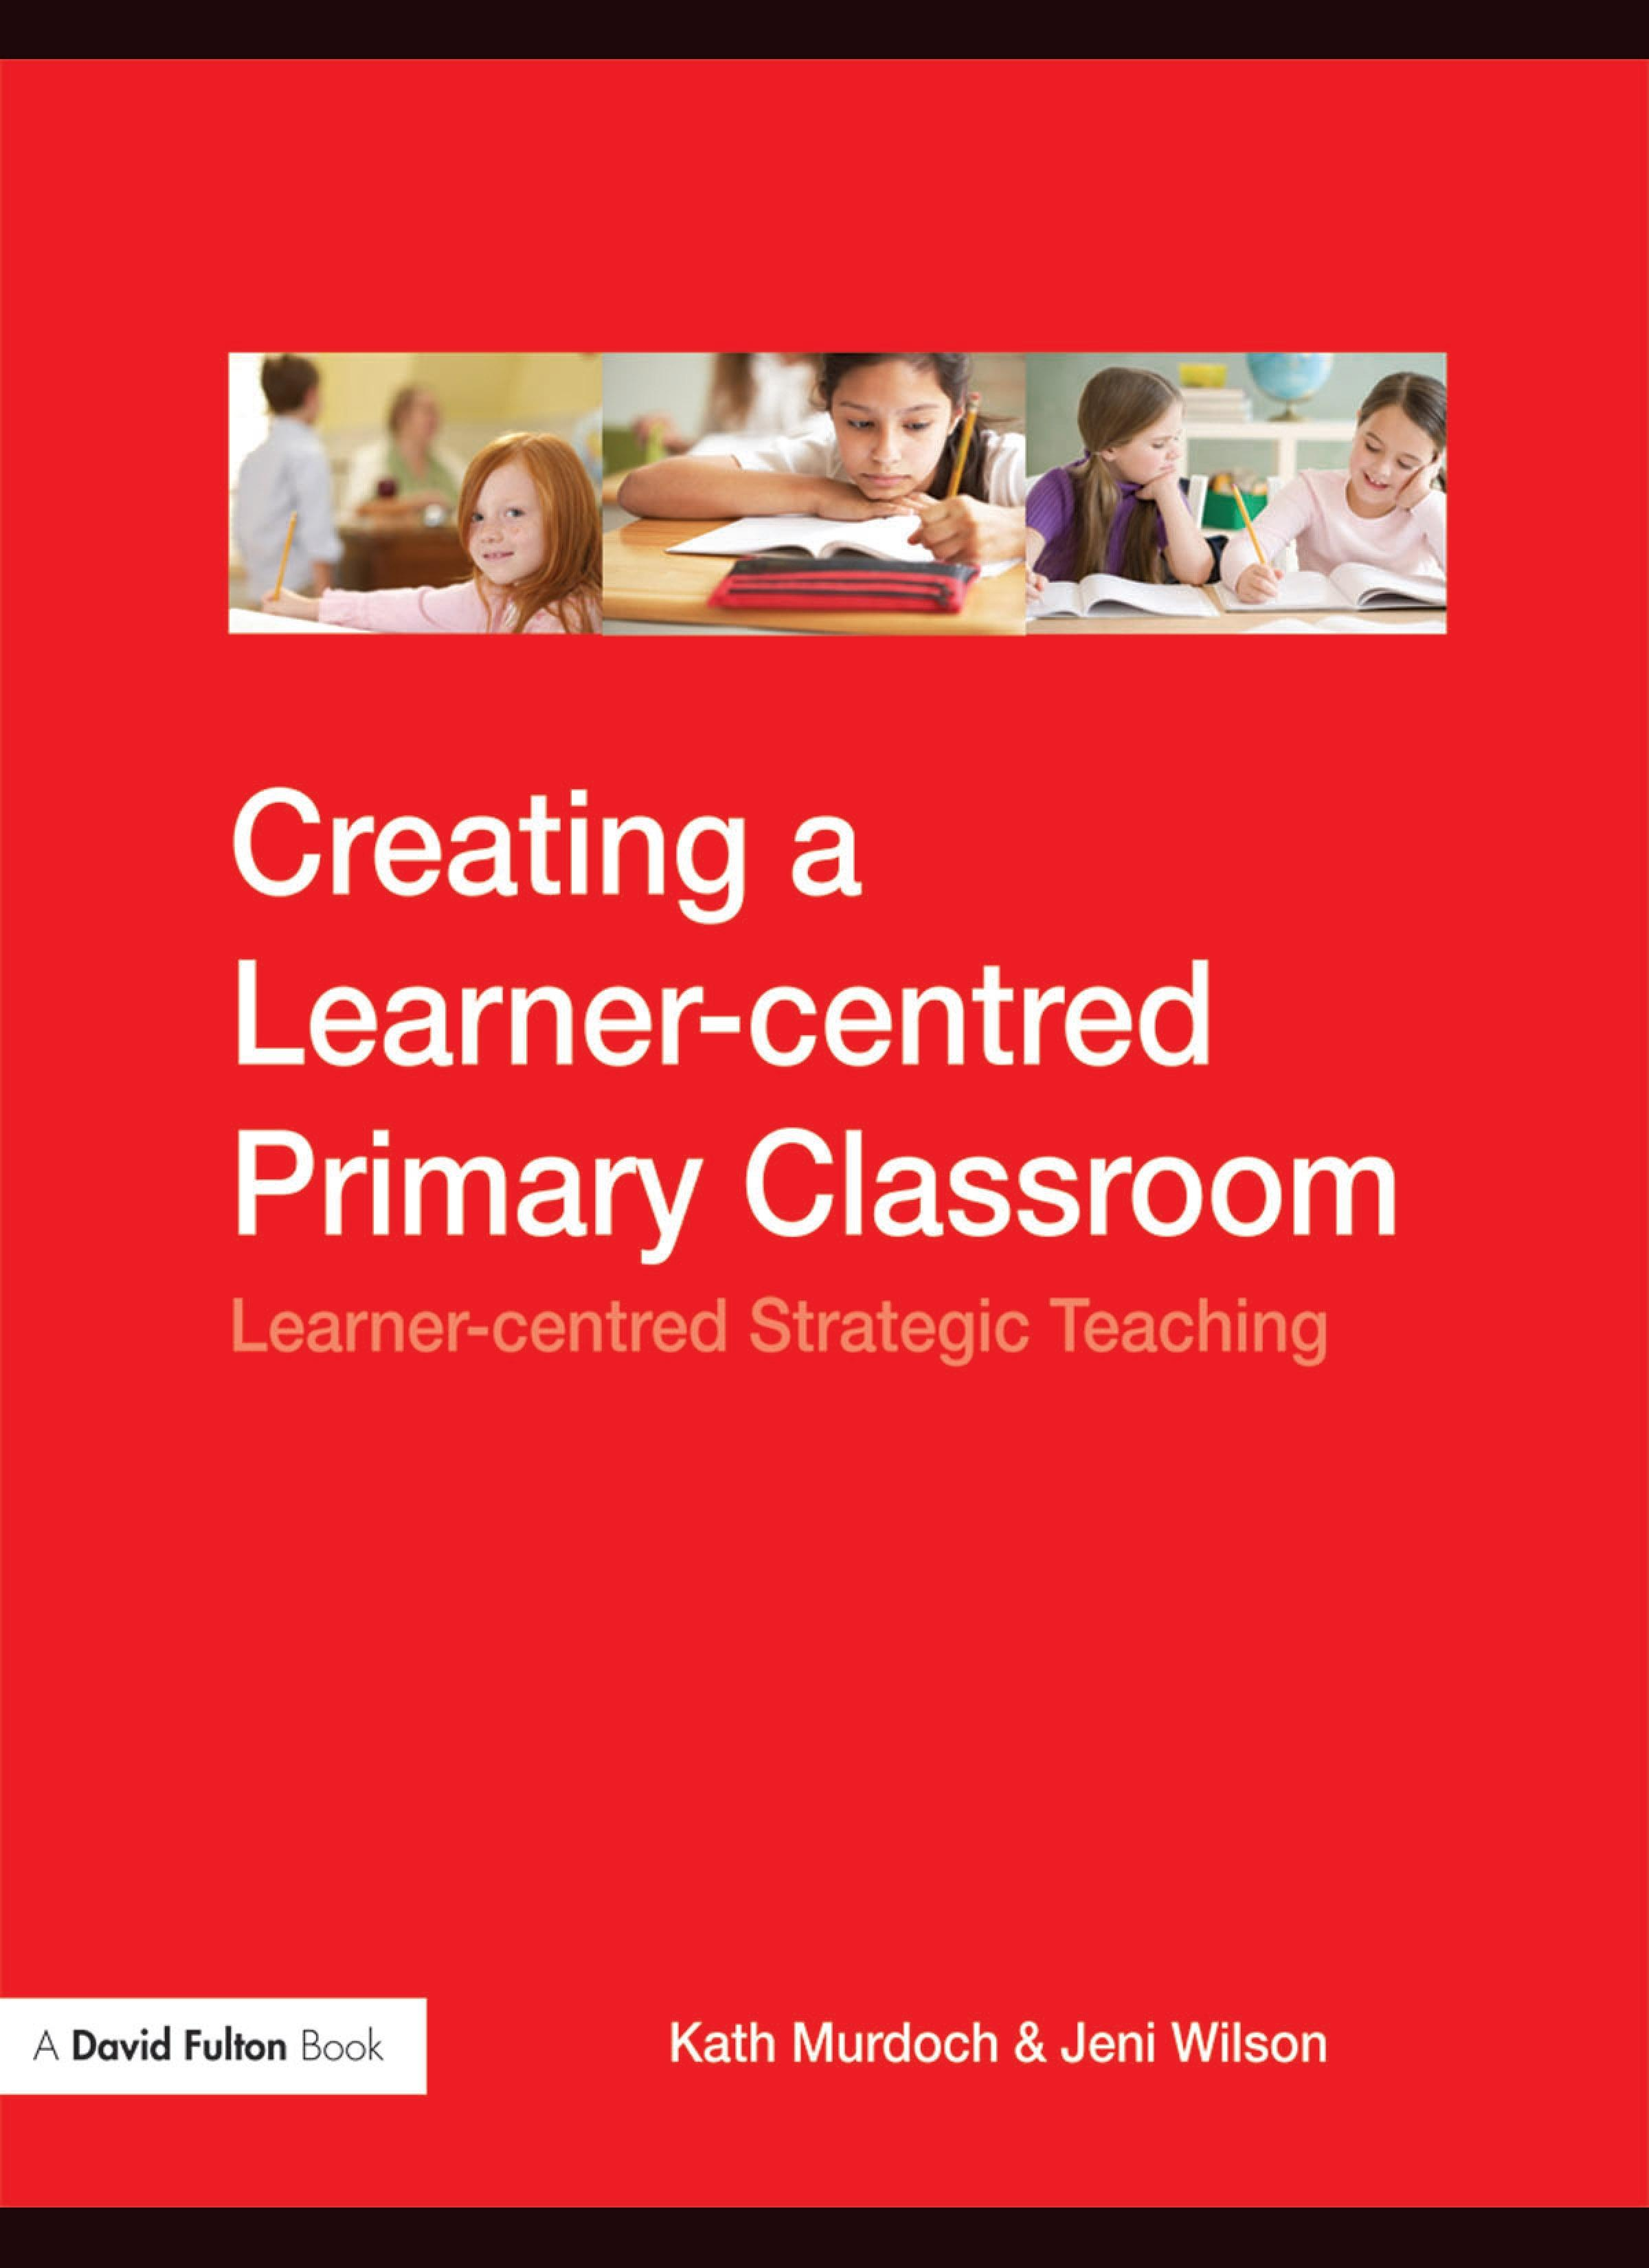 Creating a Learner-centred Primary Classroom: Learner-centered Strategic Teaching EB9780203931127